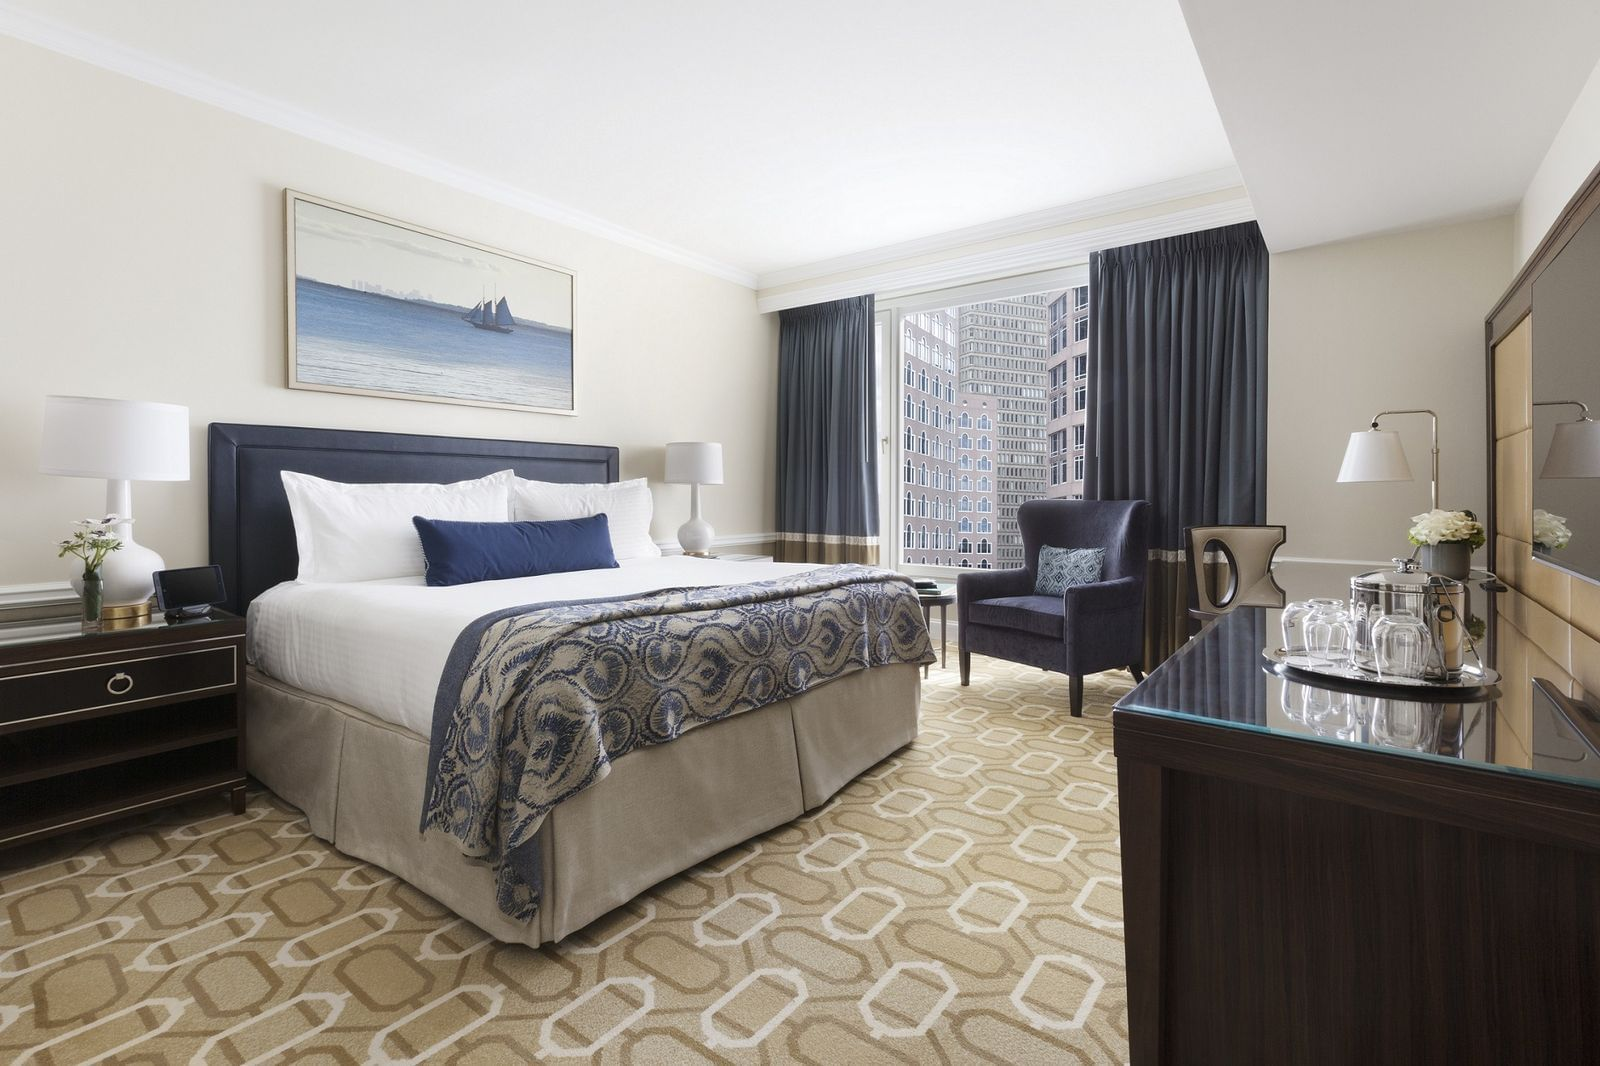 Hotel room with King bed and city view